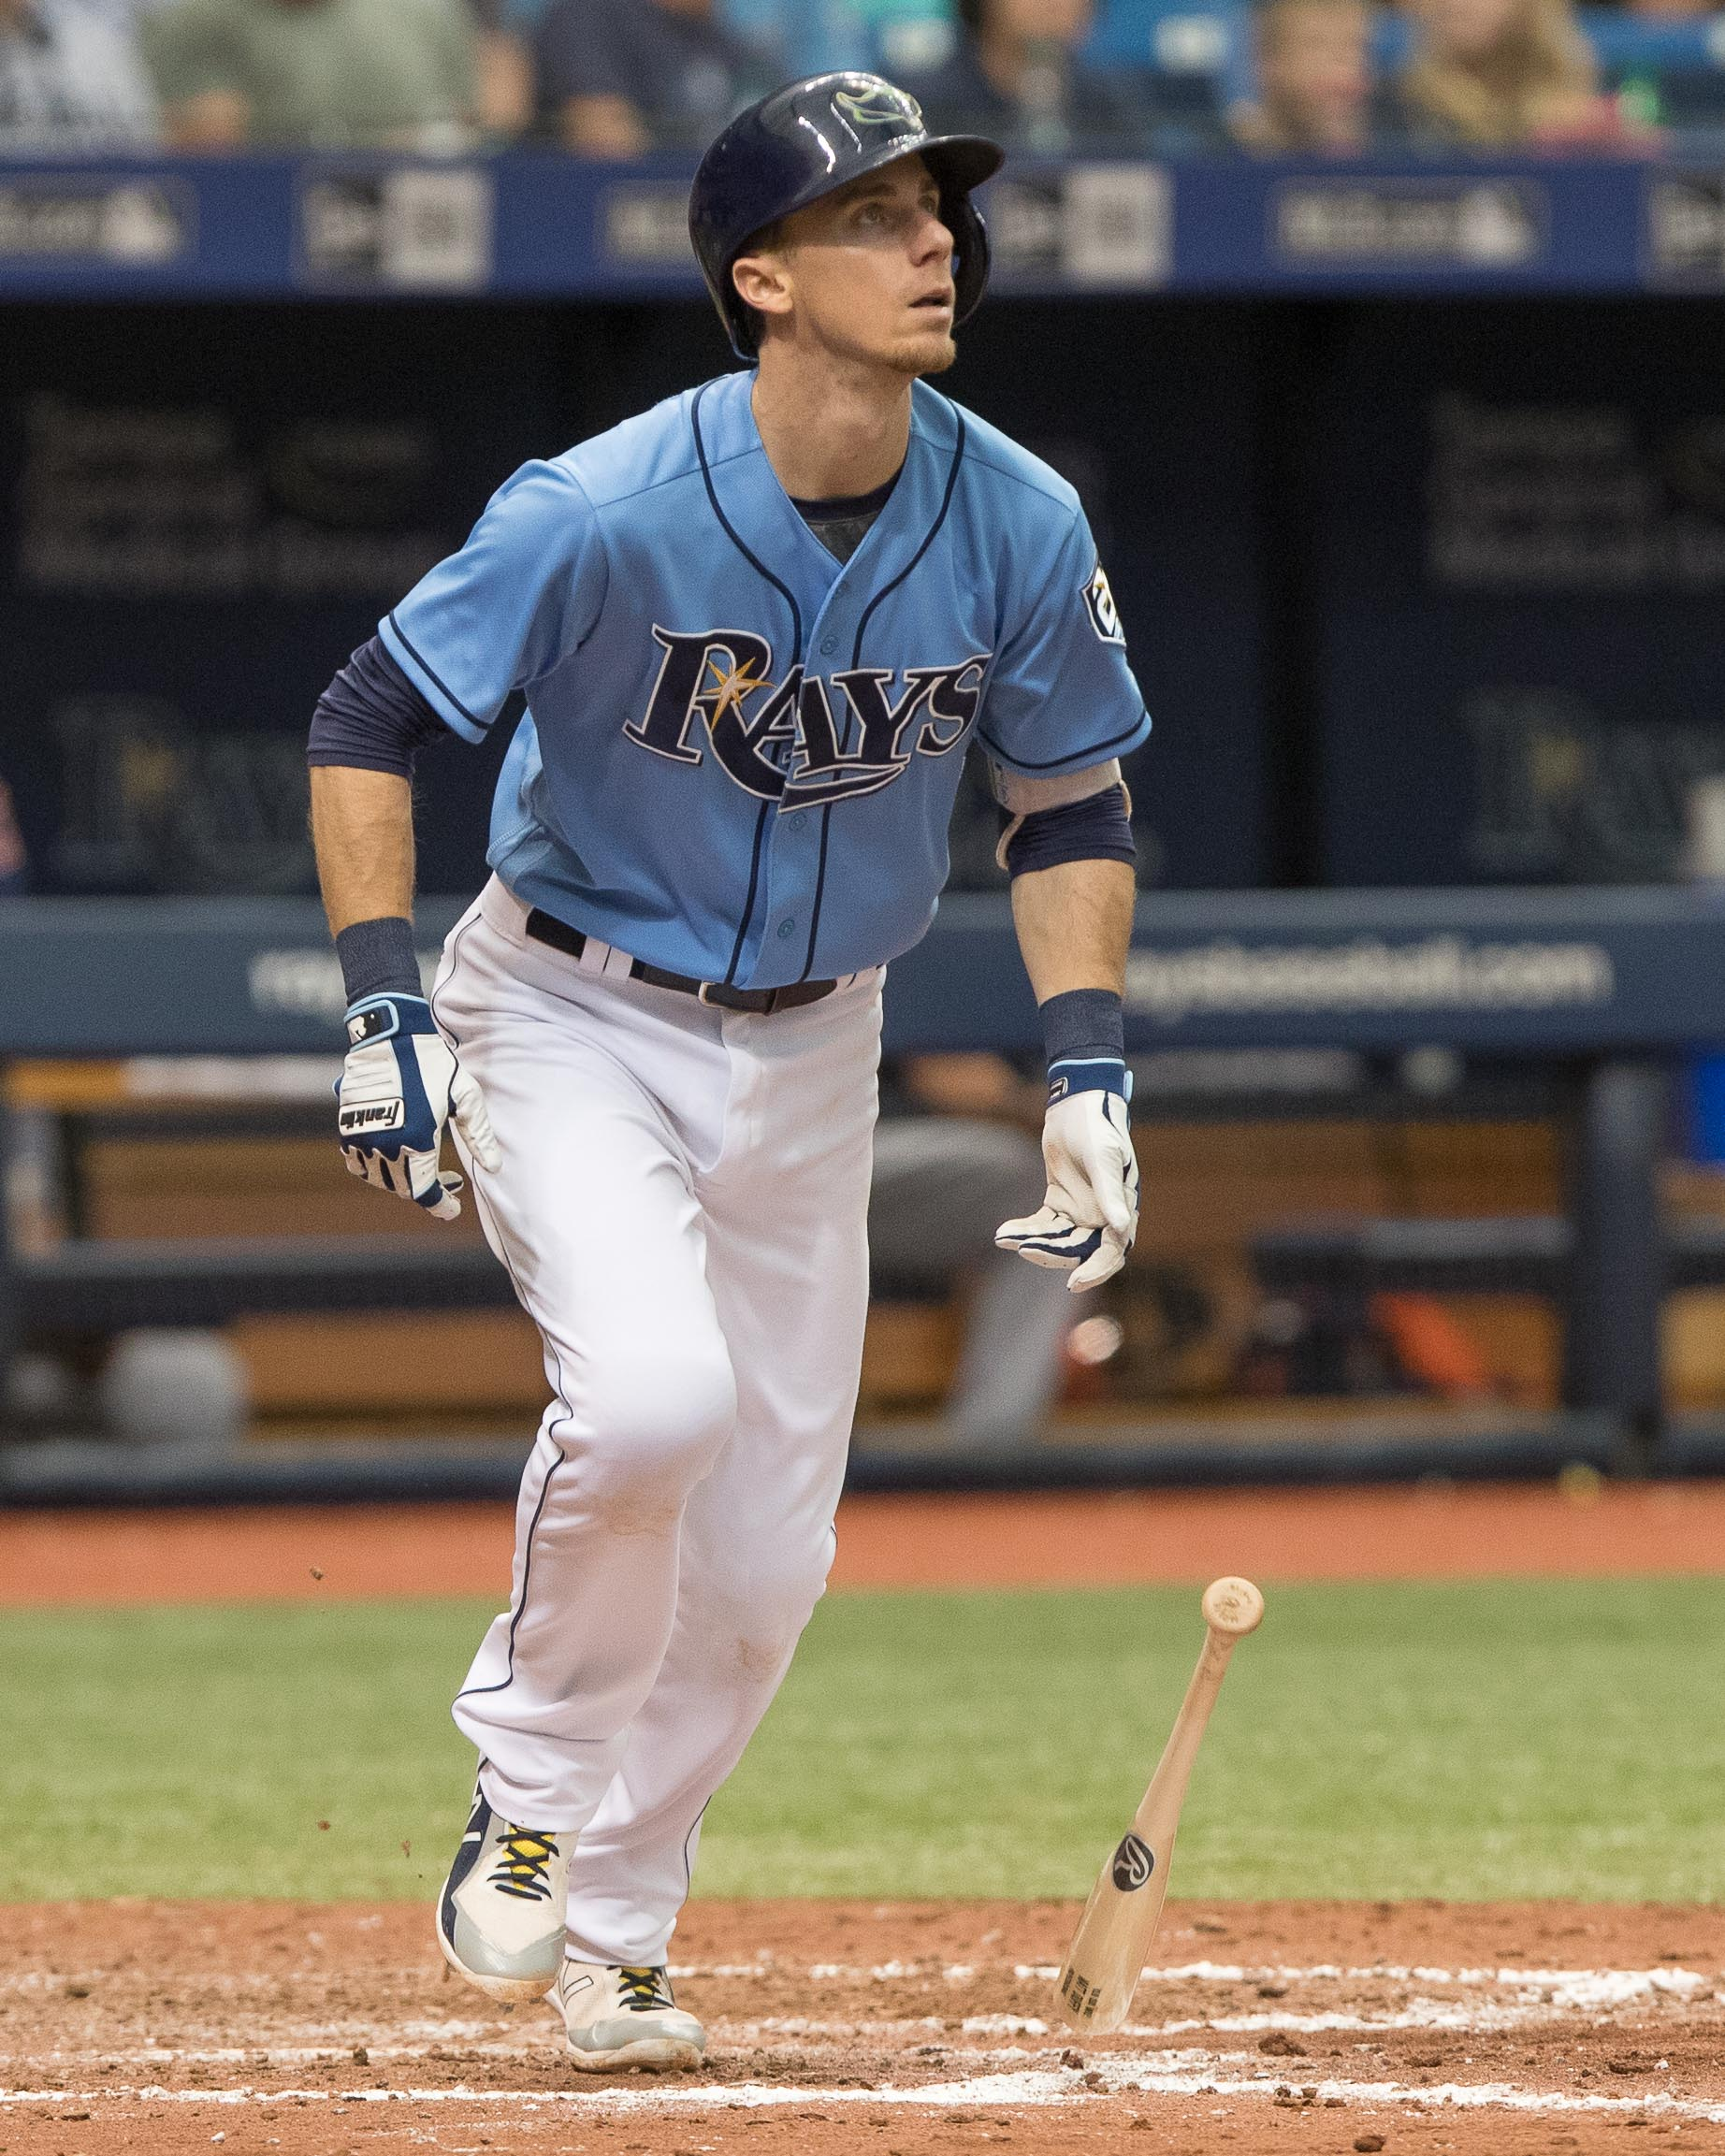 Duffy had a two-run single for Rays./STEVEN MUNCIE